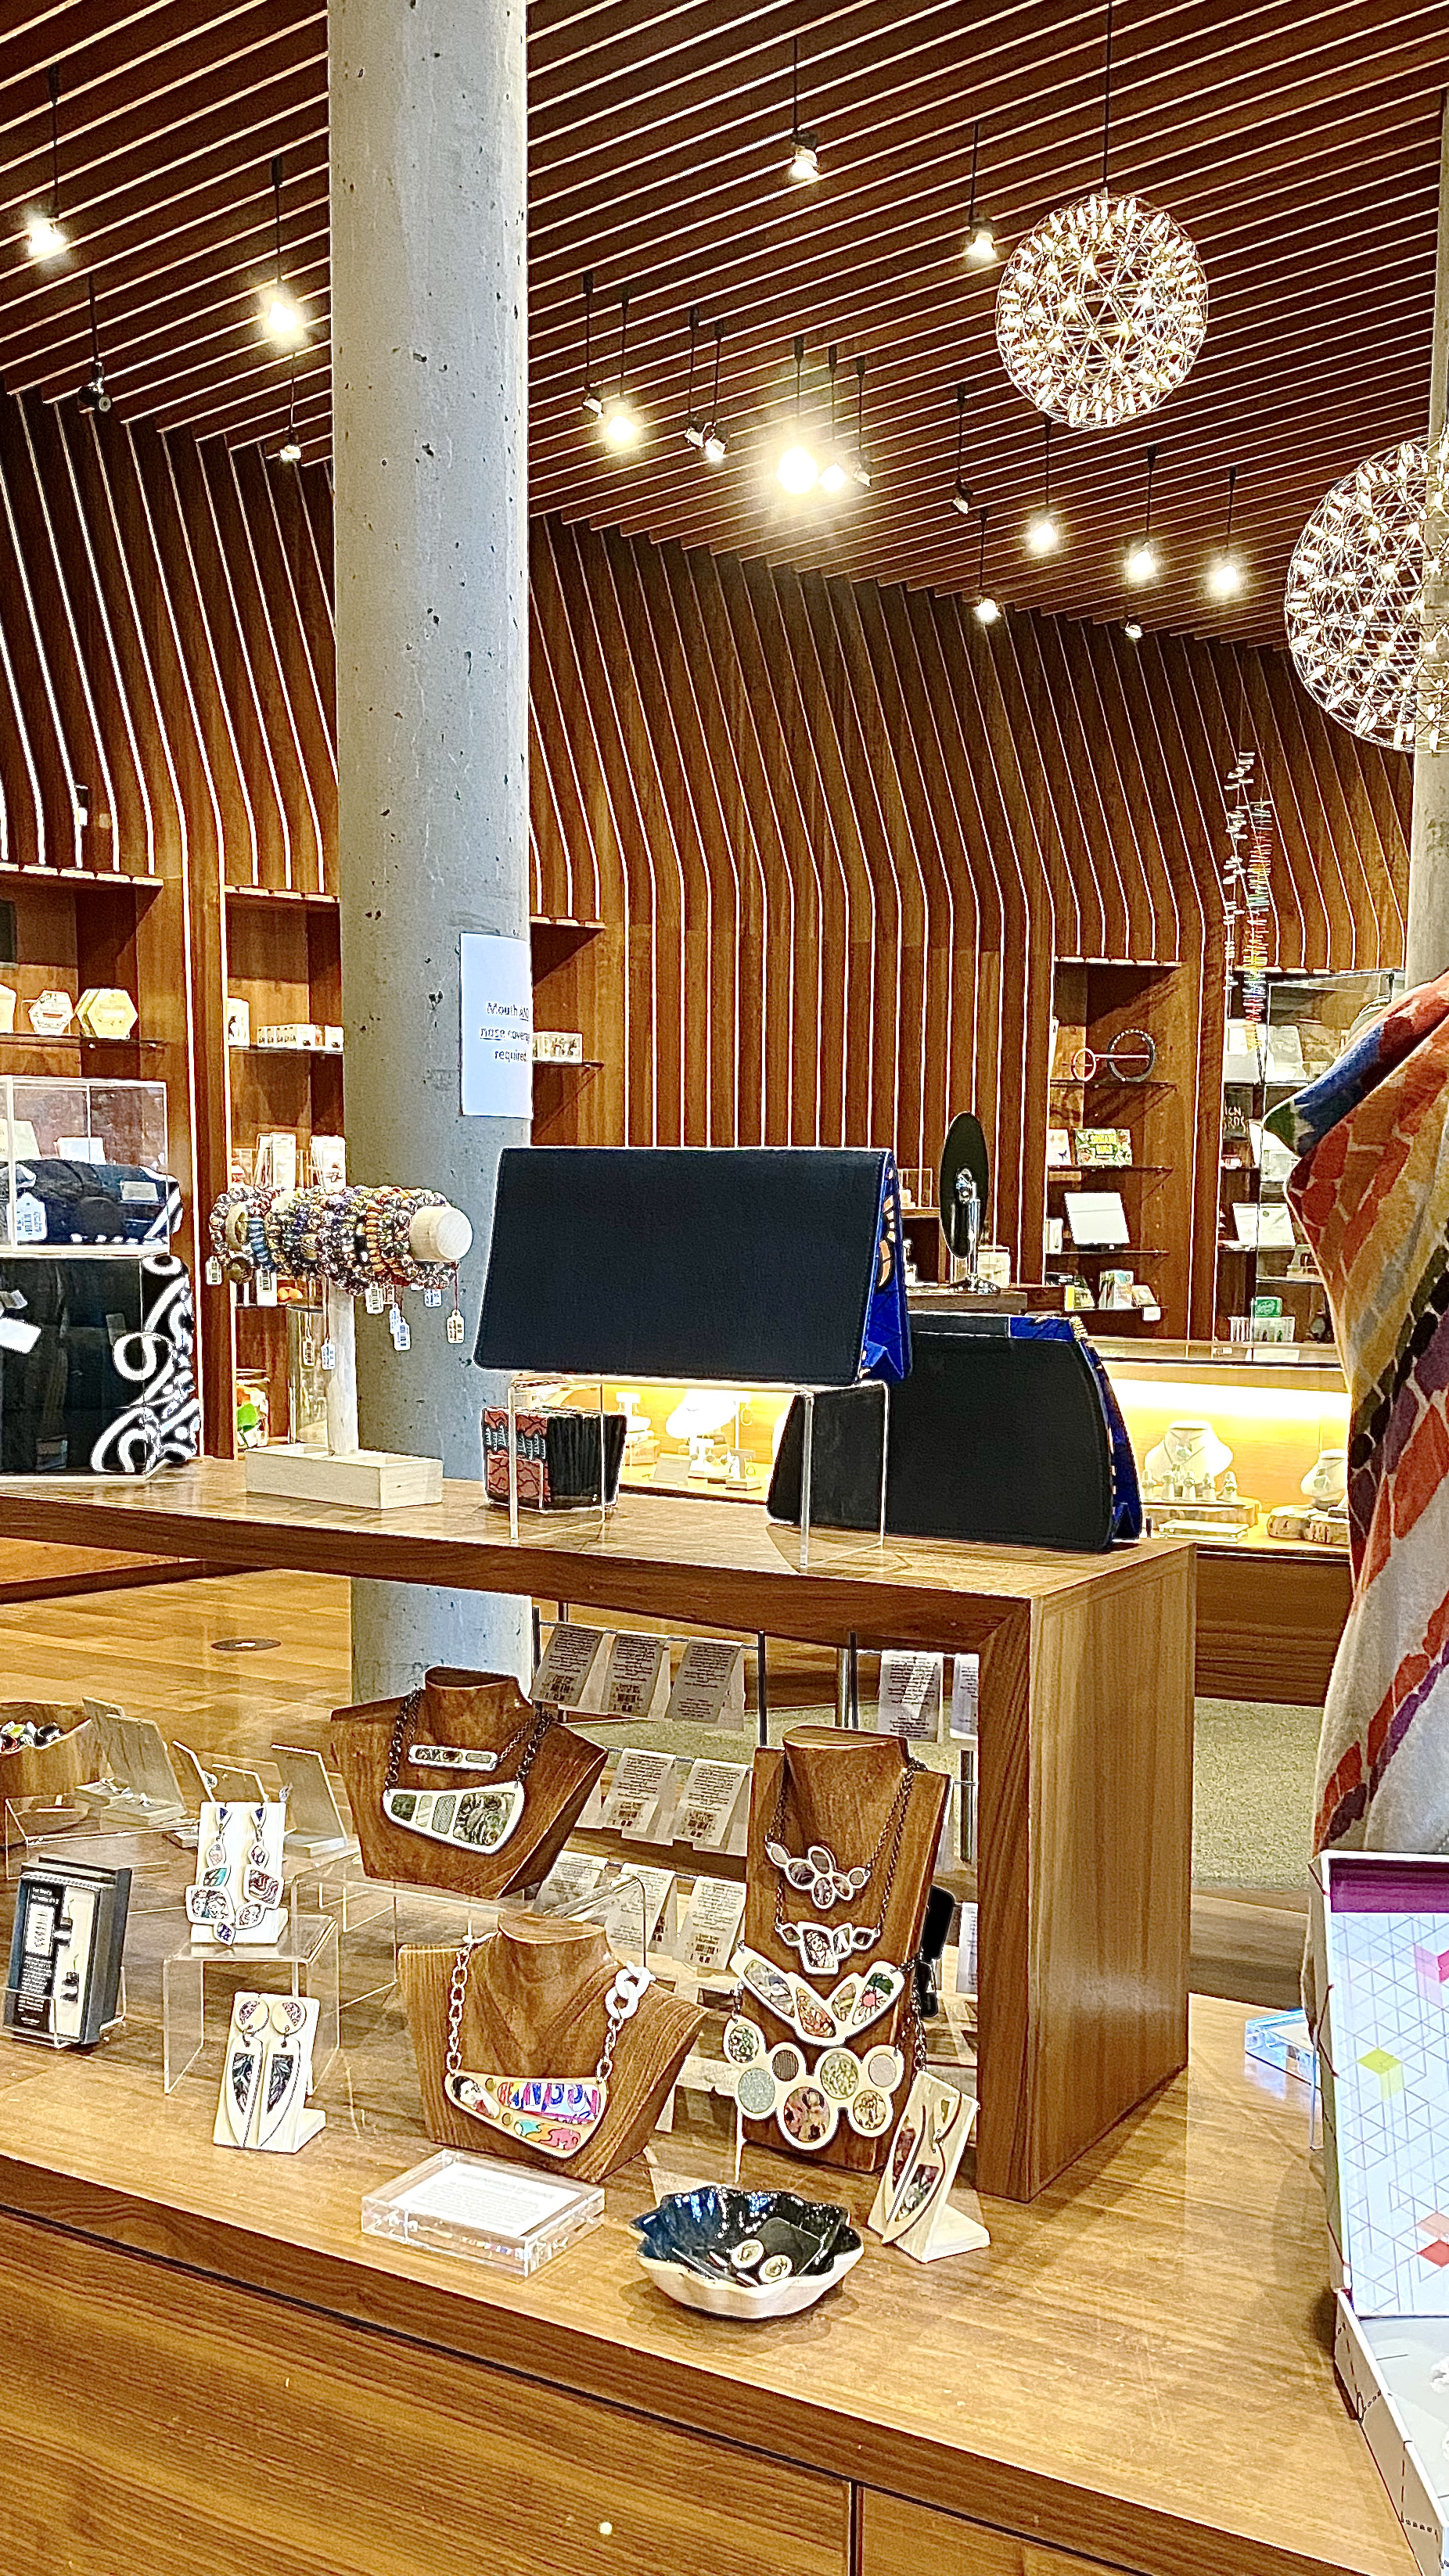 Custom one of a kind Regenerous Designs art jewelry featured at Crystal Bridges Art Museum gift shop